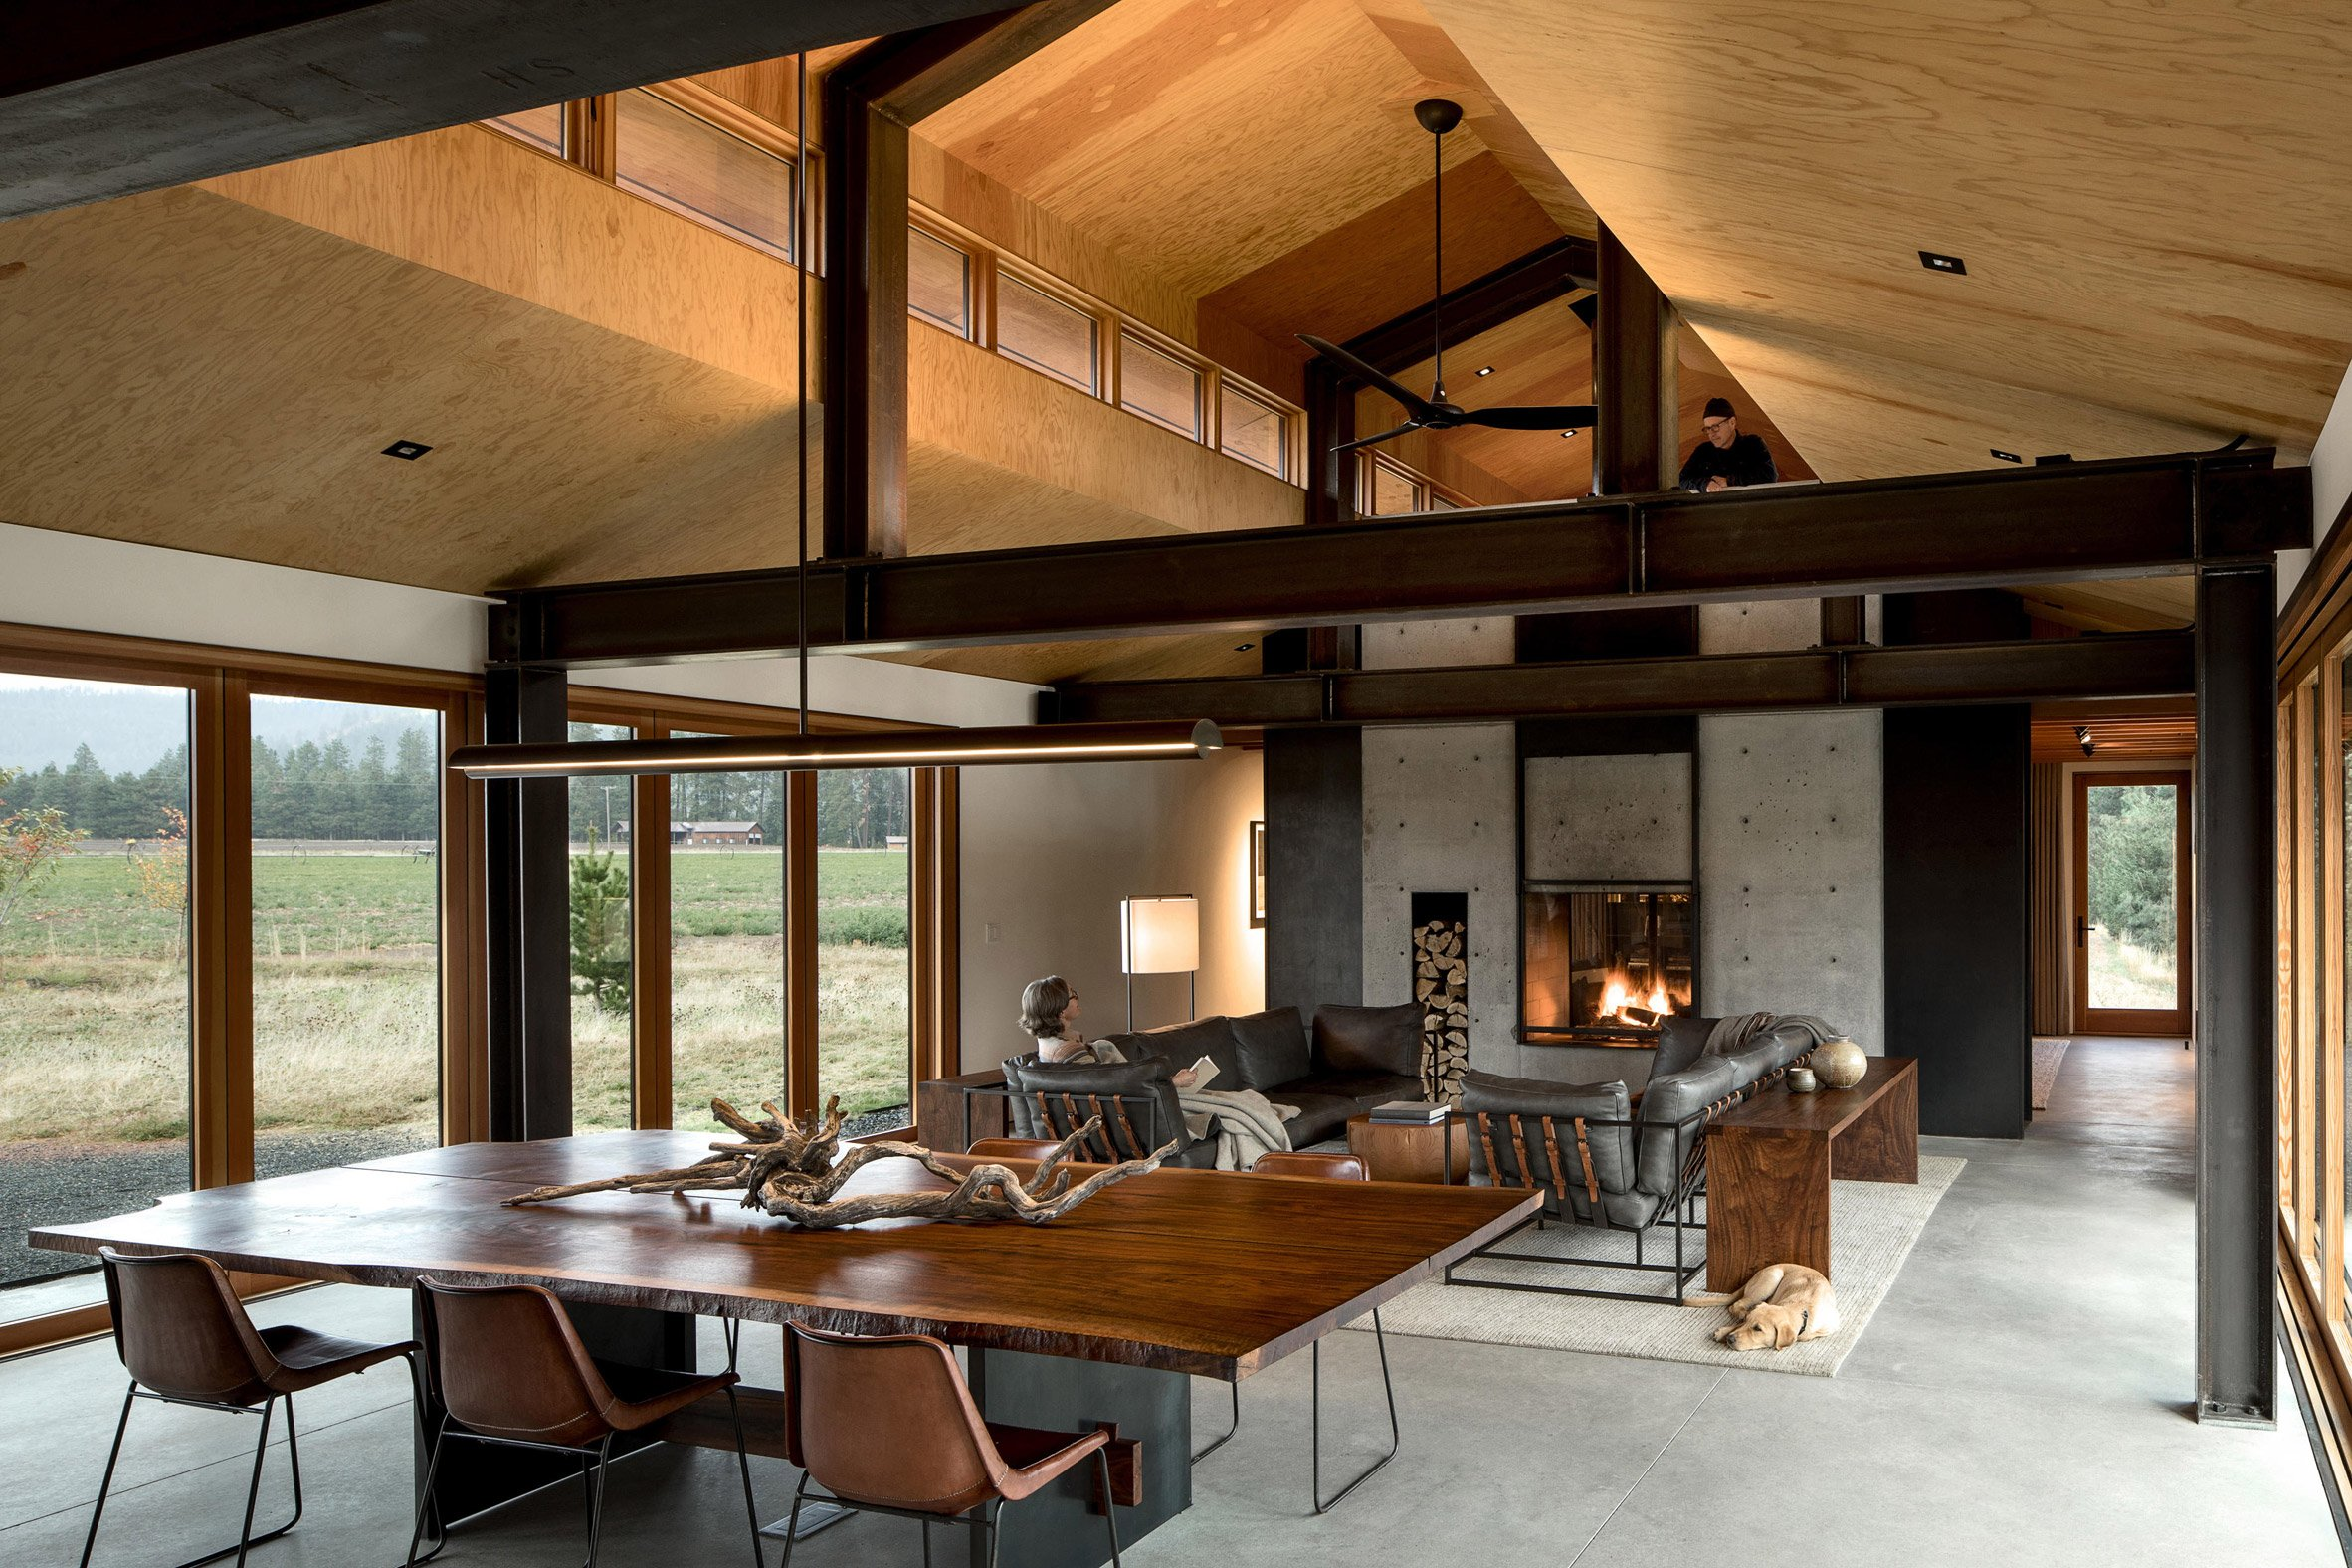 Trout Lake Residence by Olson Kundig